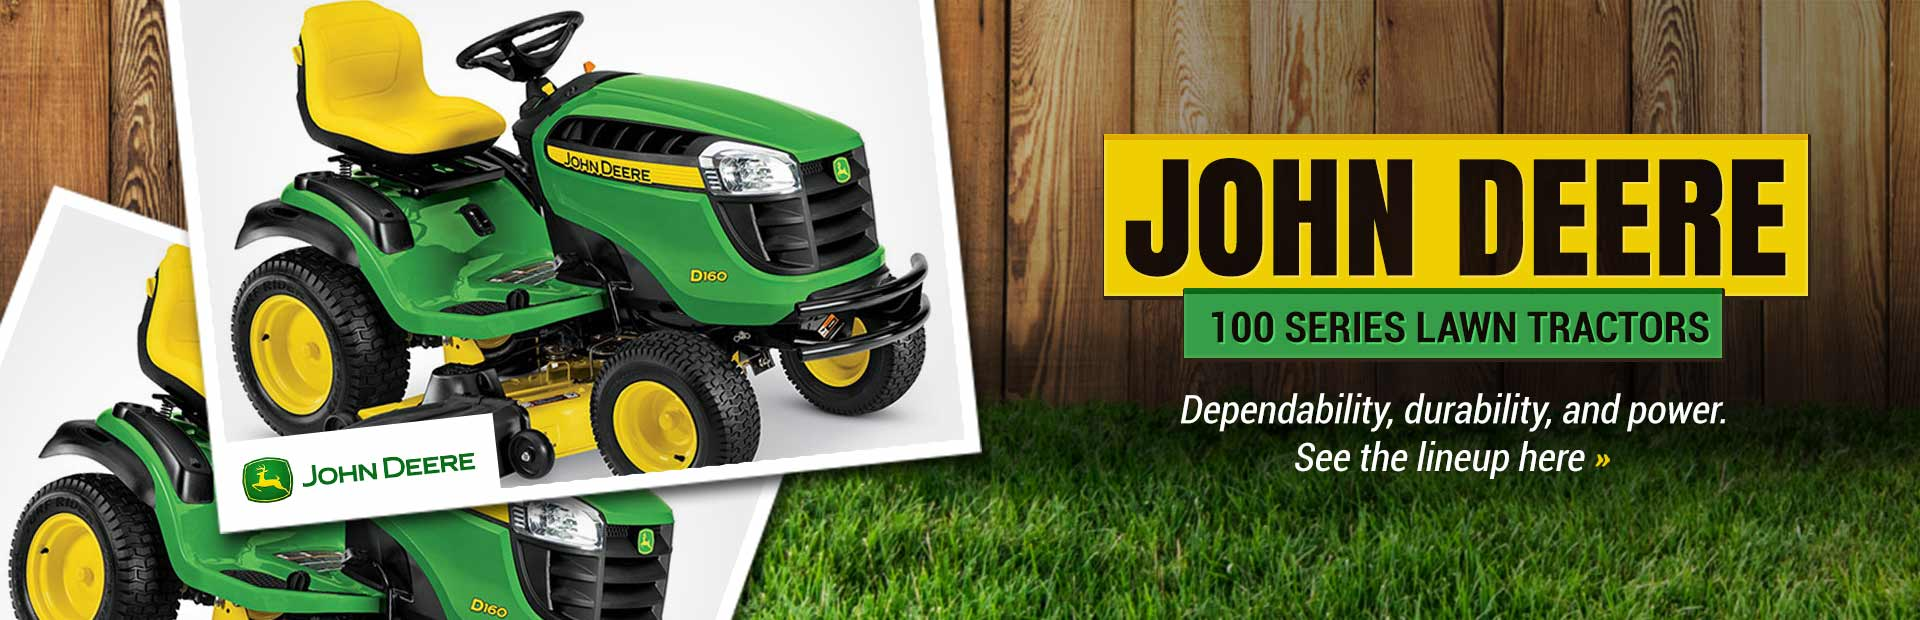 John Deere 100 Series Lawn Tractors: Click here to view the lineup!